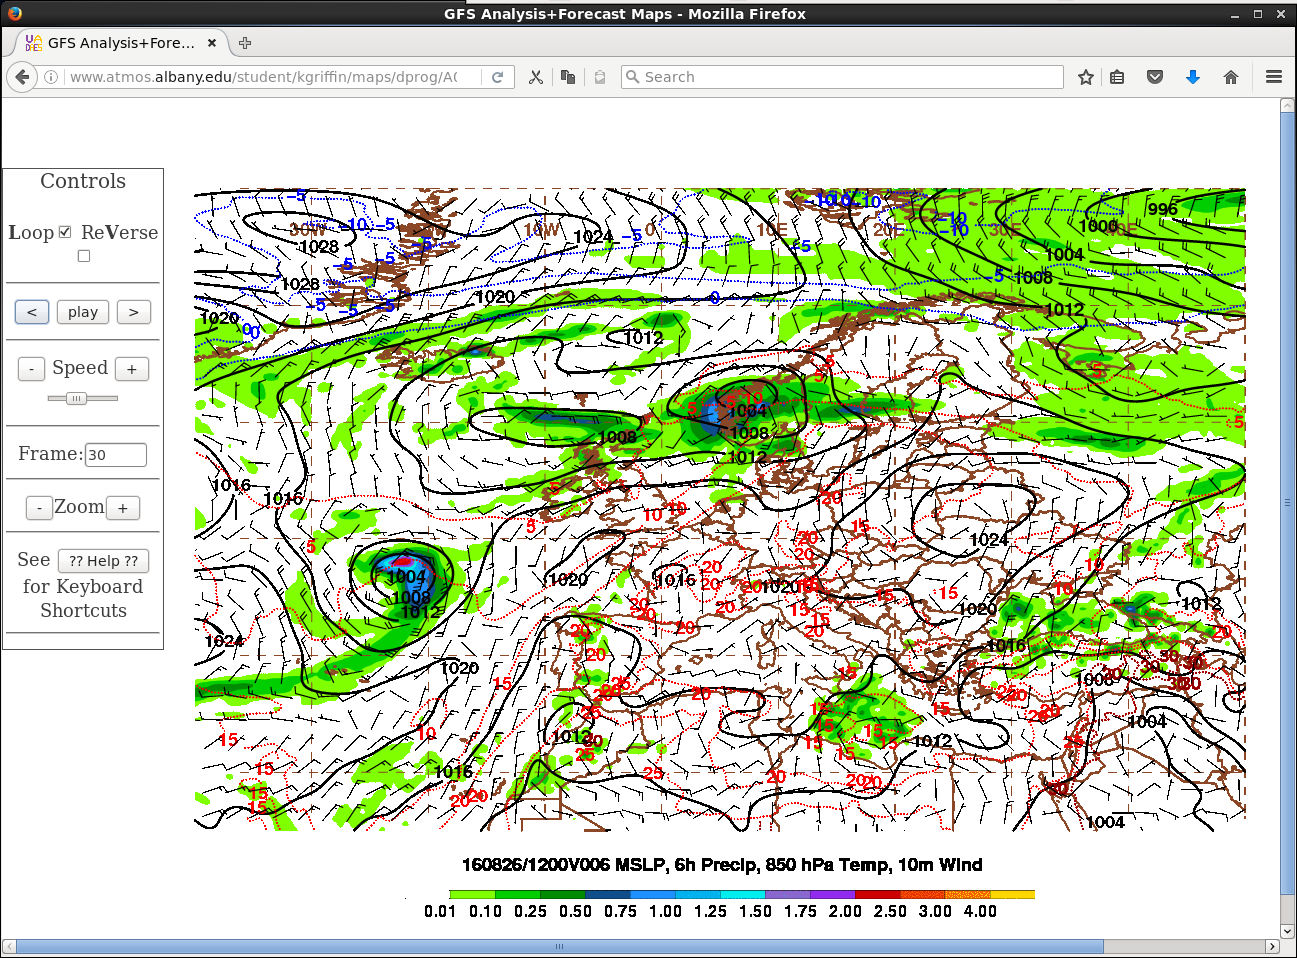 GFS model fields of surface pressure, 6-hour precipitation, 850 hPa temperature, and 10-m wind [click to play animation]